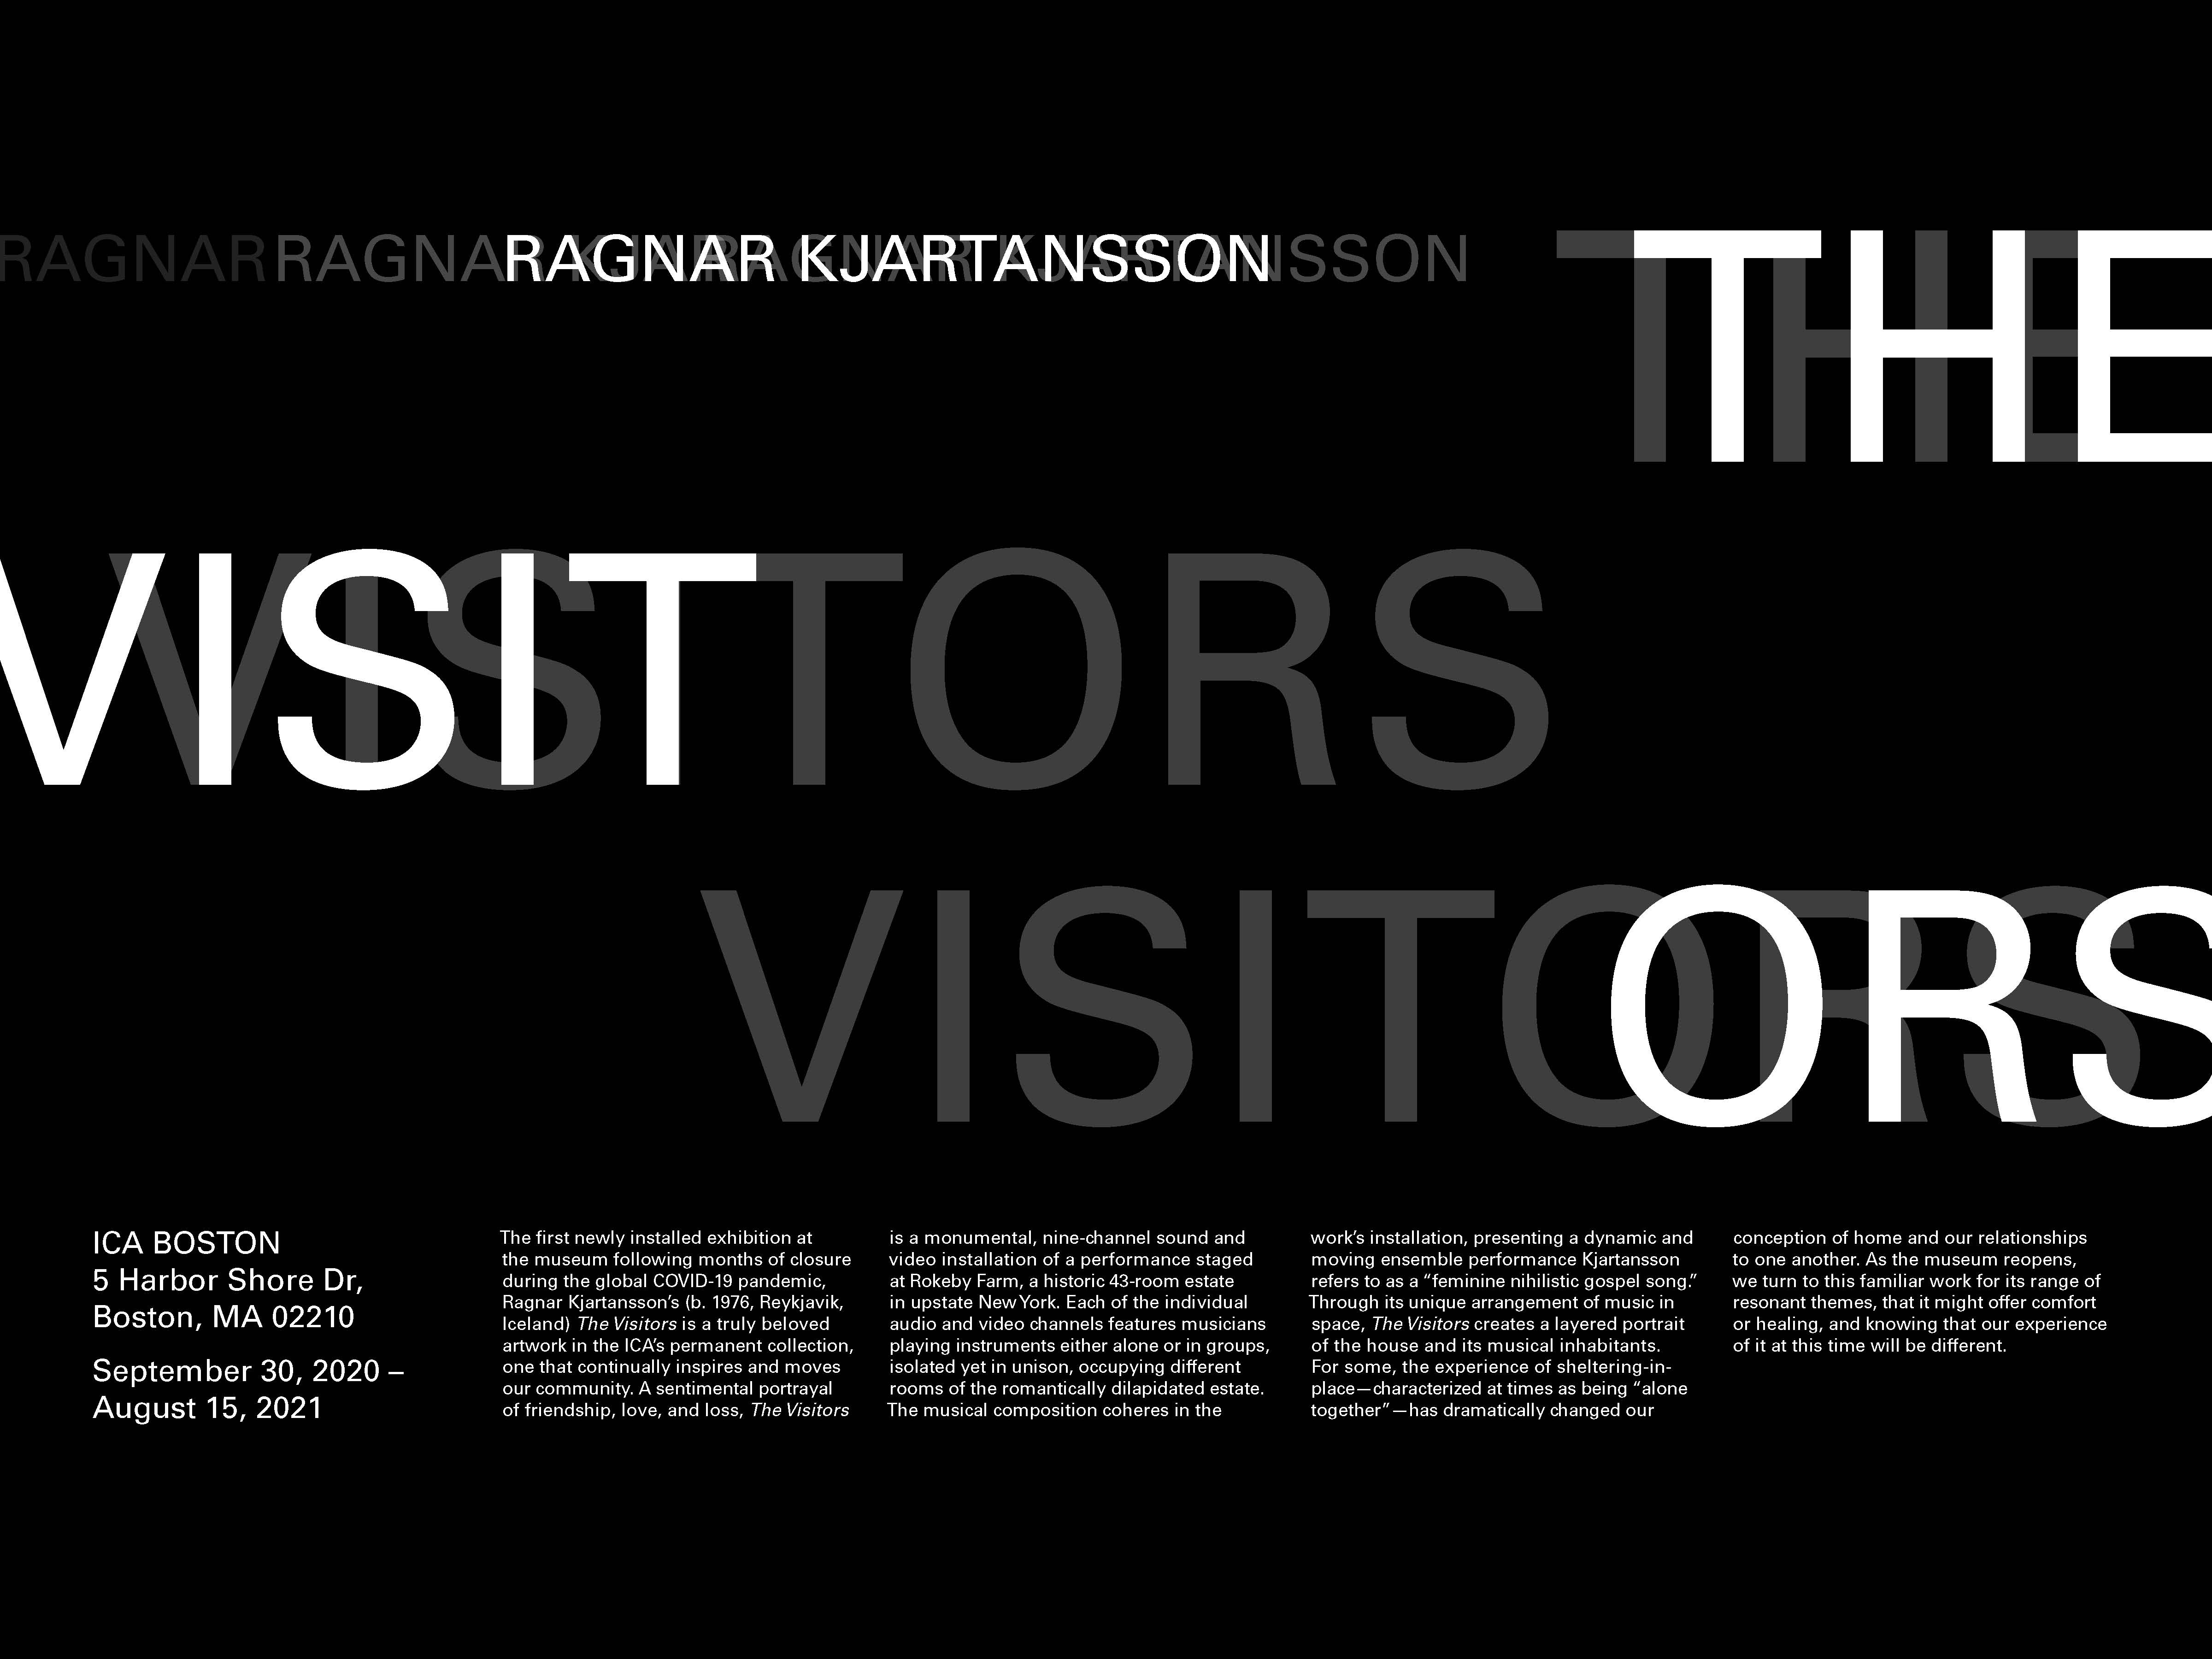 poster for ICA's show The Visitors.                  The words The Visitors is written in large white text over a black background